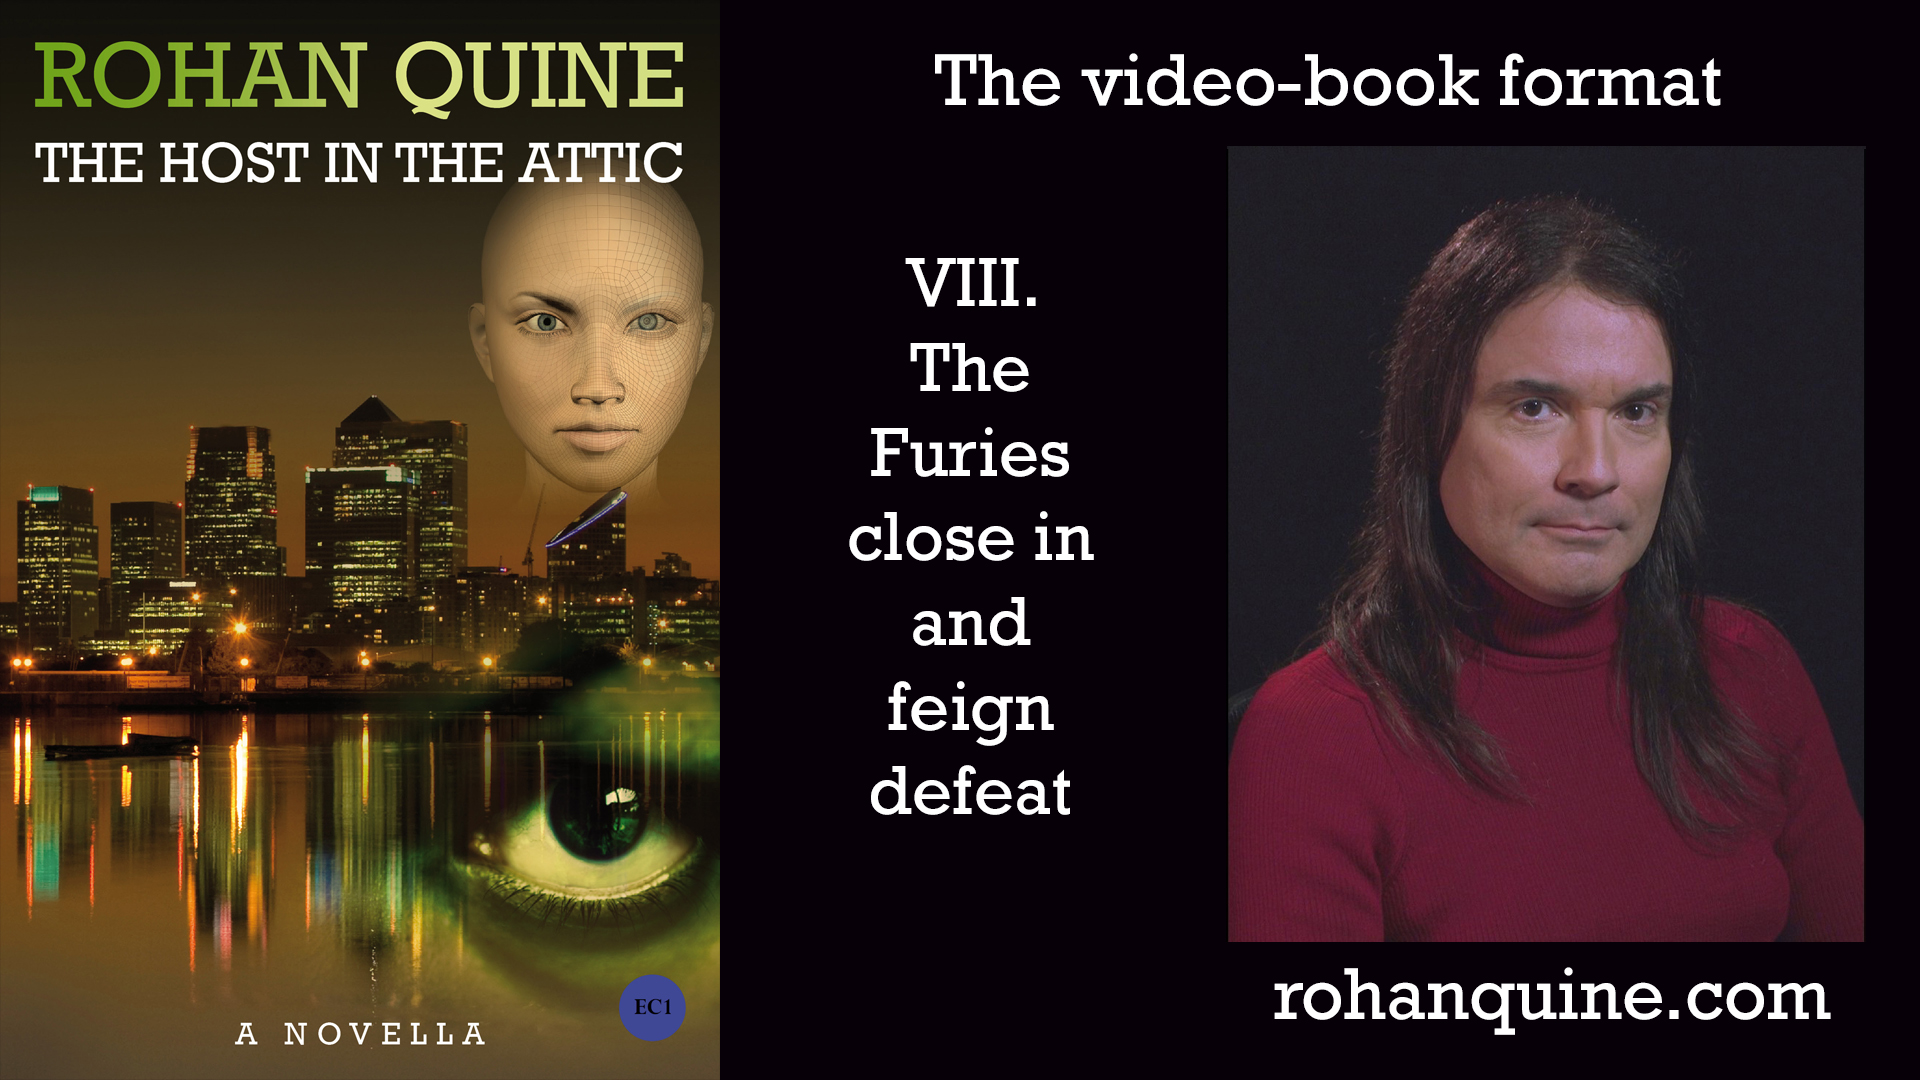 THE HOST IN THE ATTIC by Rohan Quine - video-book format - chapter VIII